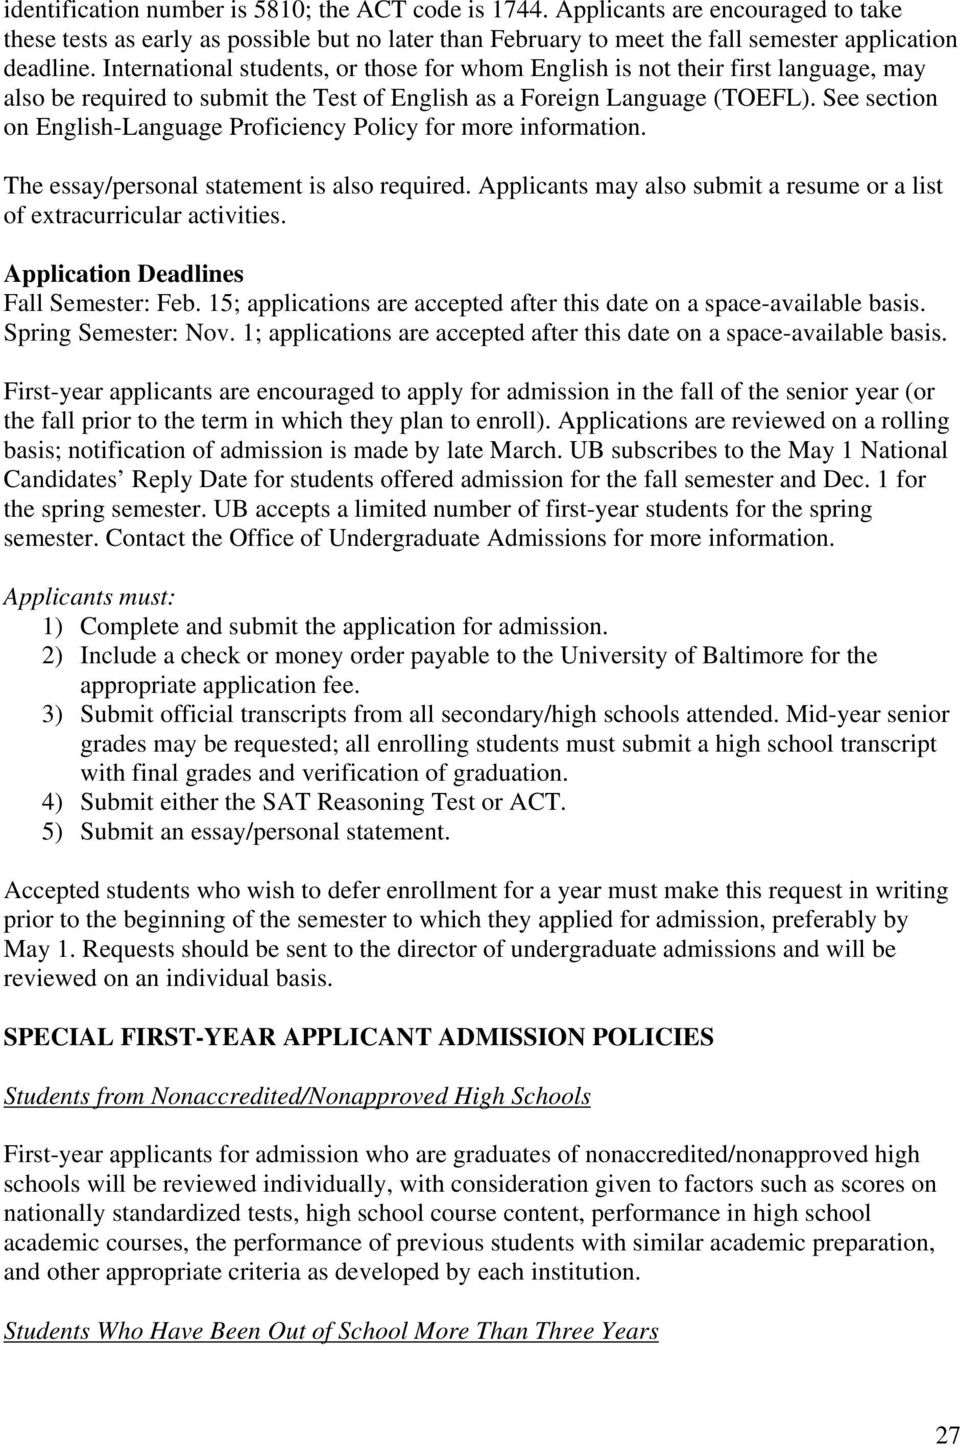 See section on English-Language Proficiency Policy for more information. The essay/personal statement is also required. Applicants may also submit a resume or a list of extracurricular activities.